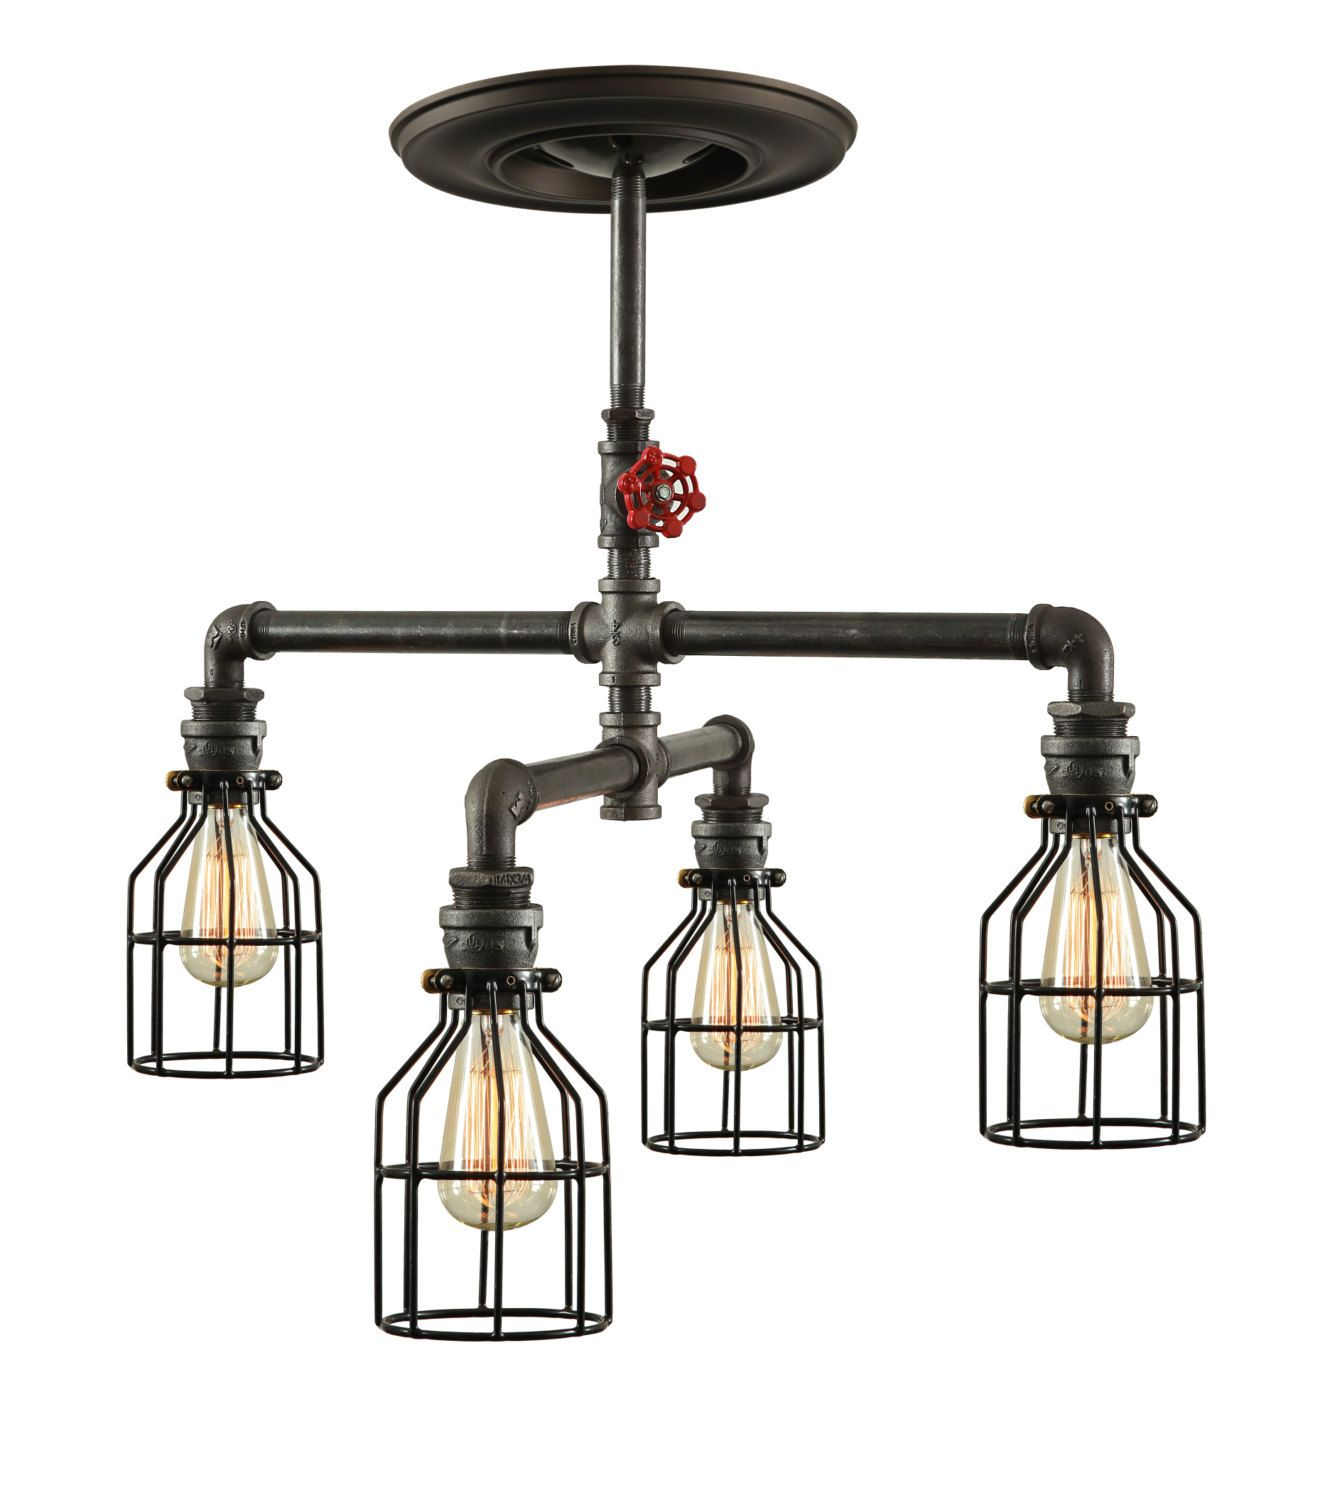 Pipe Light Fixtures Steampunk Industrial Ceiling Light Industrial Pipe Light